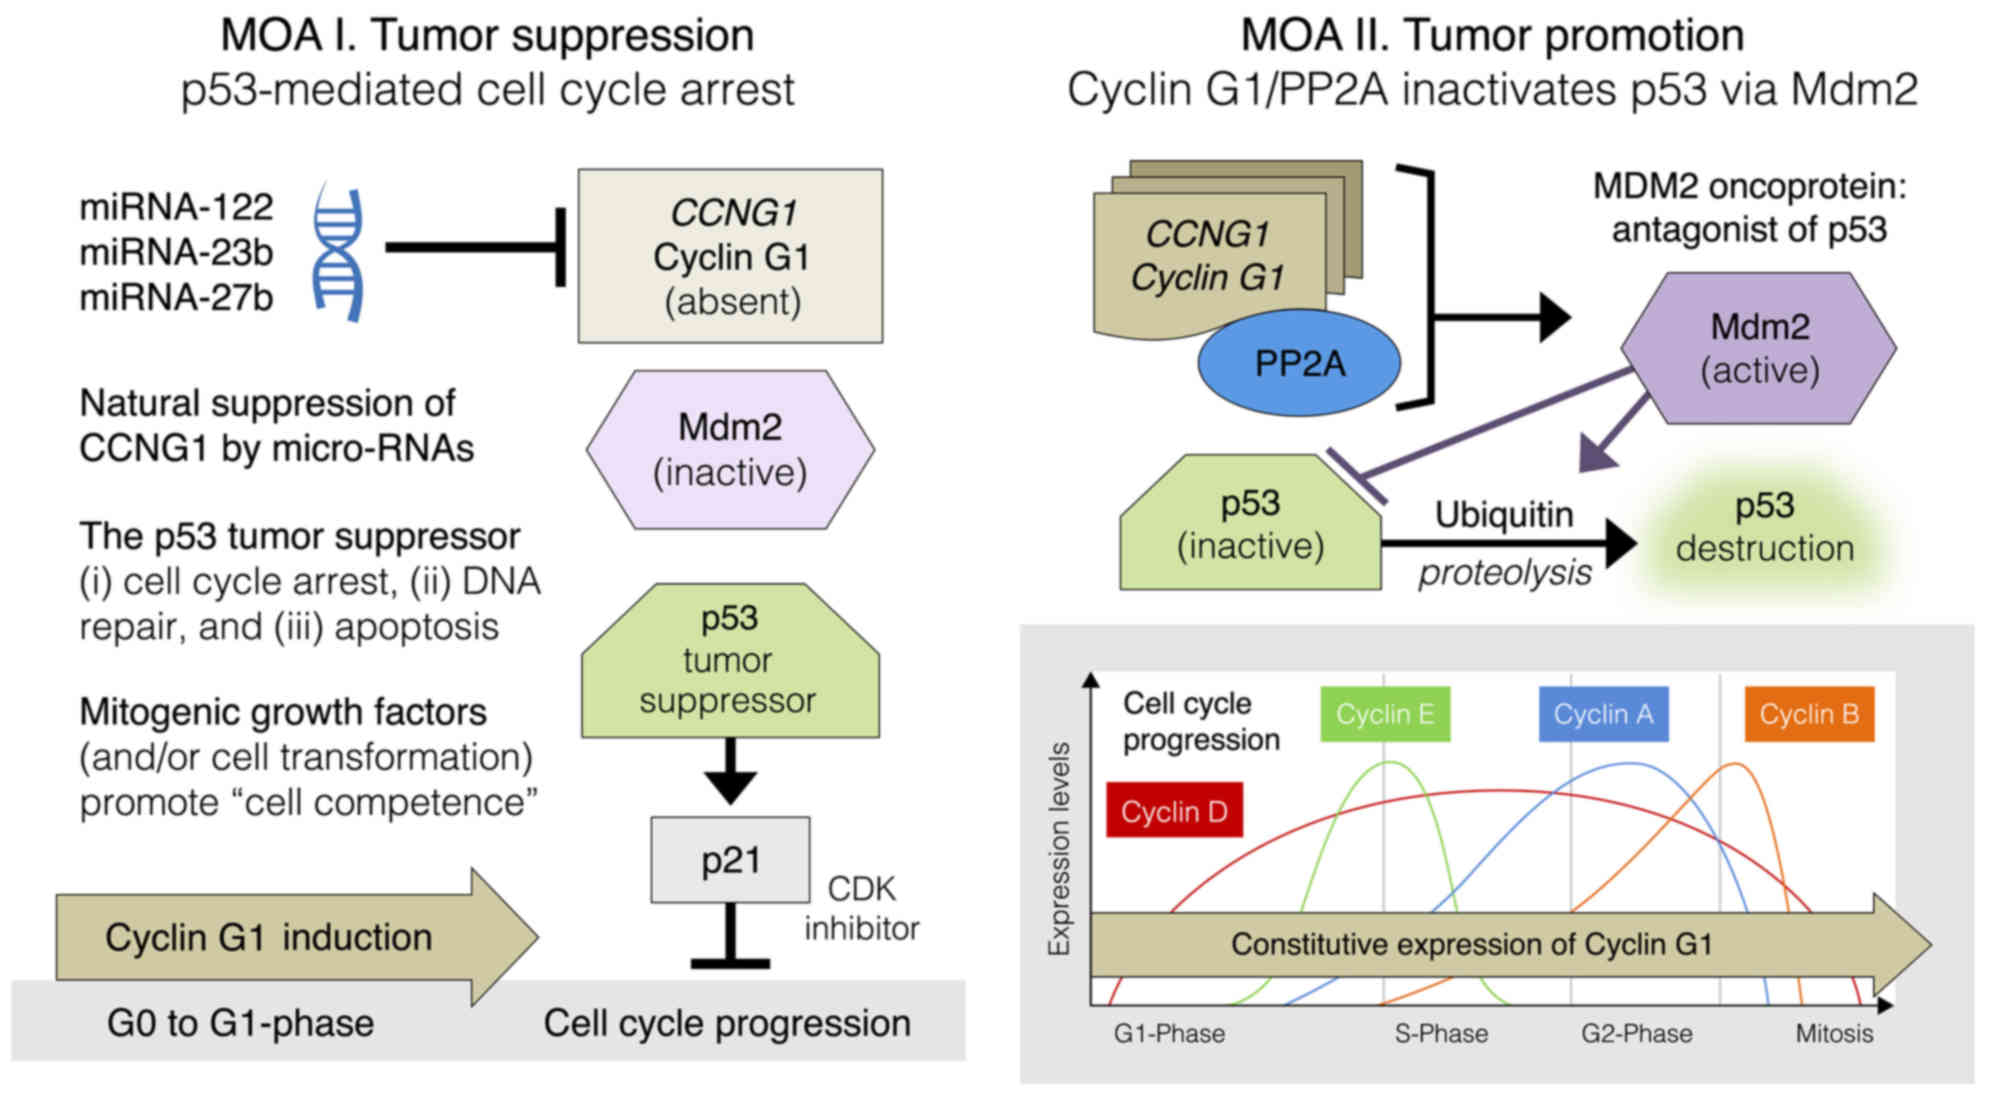 Cell cycle checkpoint control: The cyclin G1/Mdm2/p53 axis